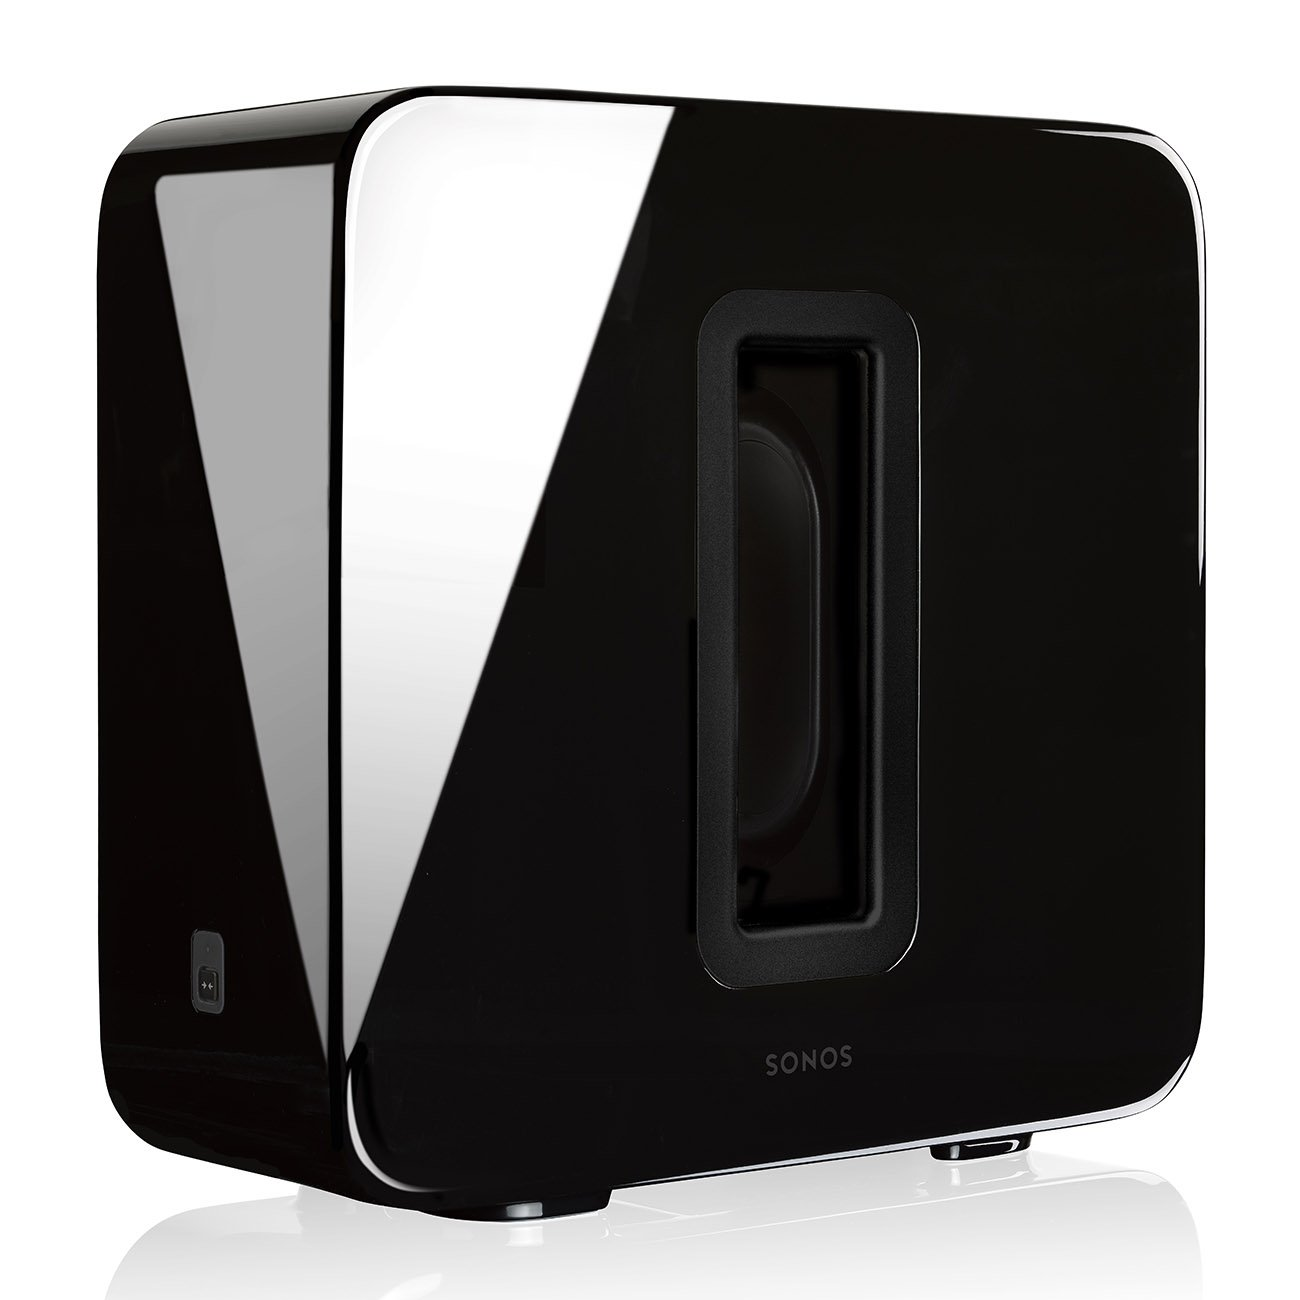 1 of Sonos Sub – Wireless Subwoofer that adds bass to your home theater and  your music. (Black)